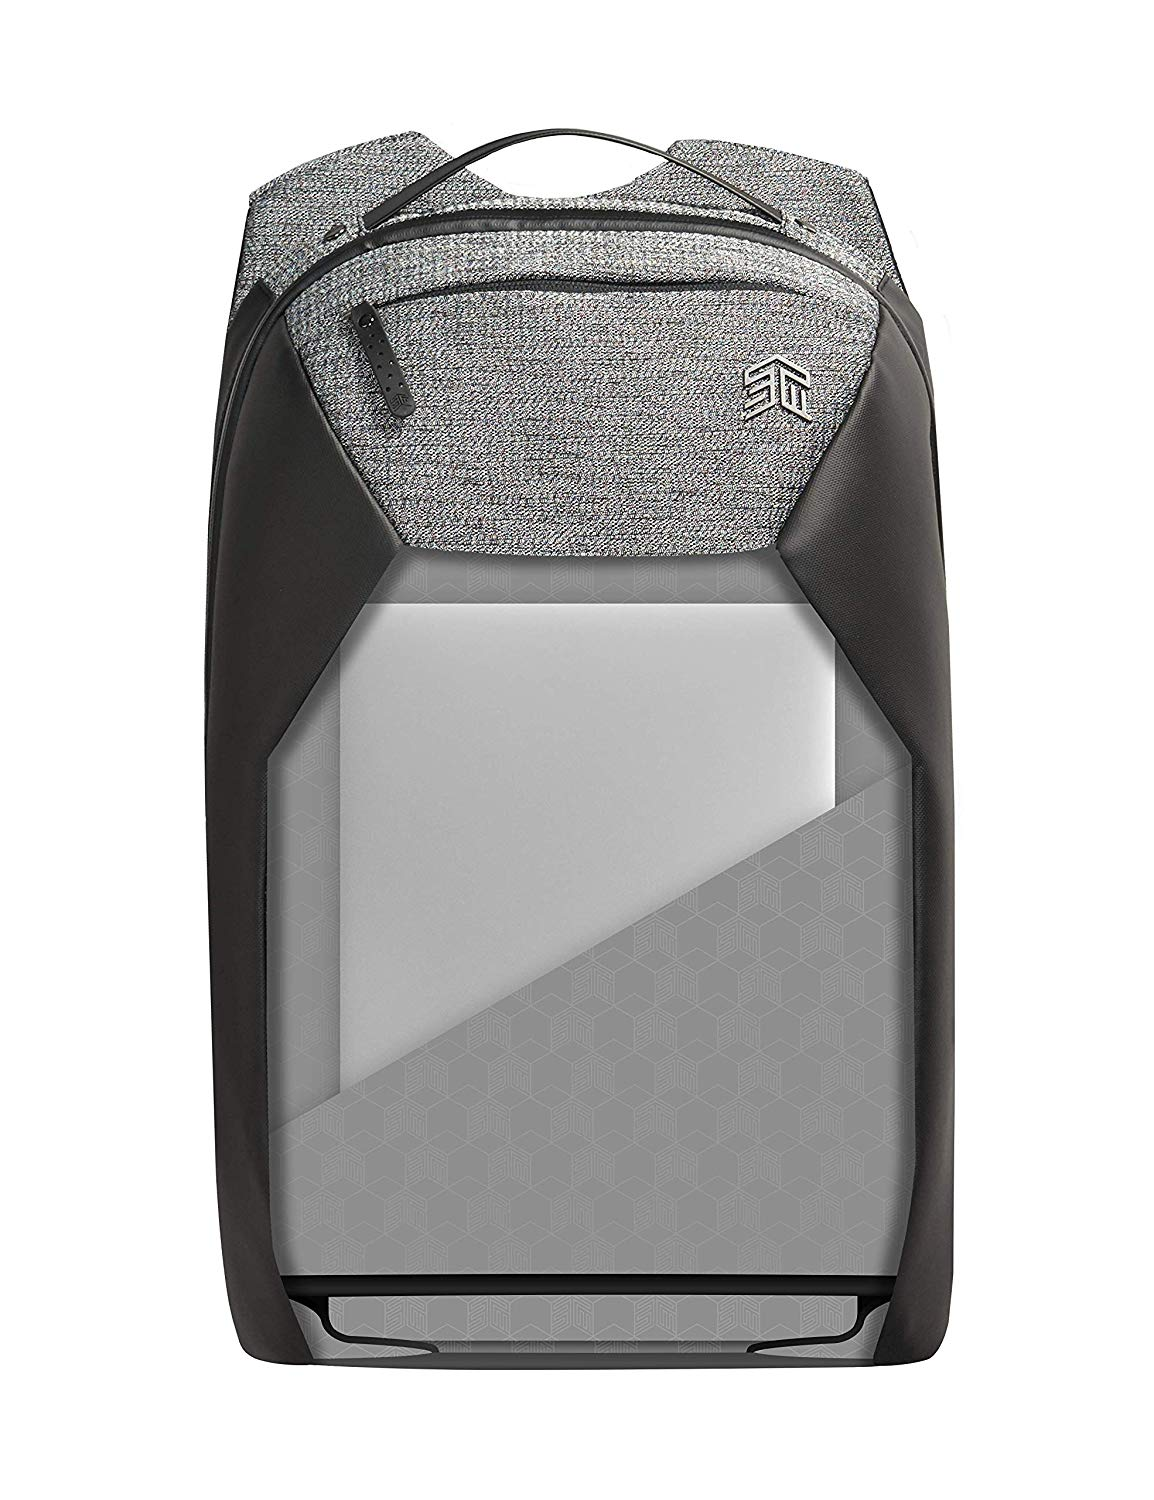 STM Myth Backpack Featuring Luggage Pass-Through 18L / 15